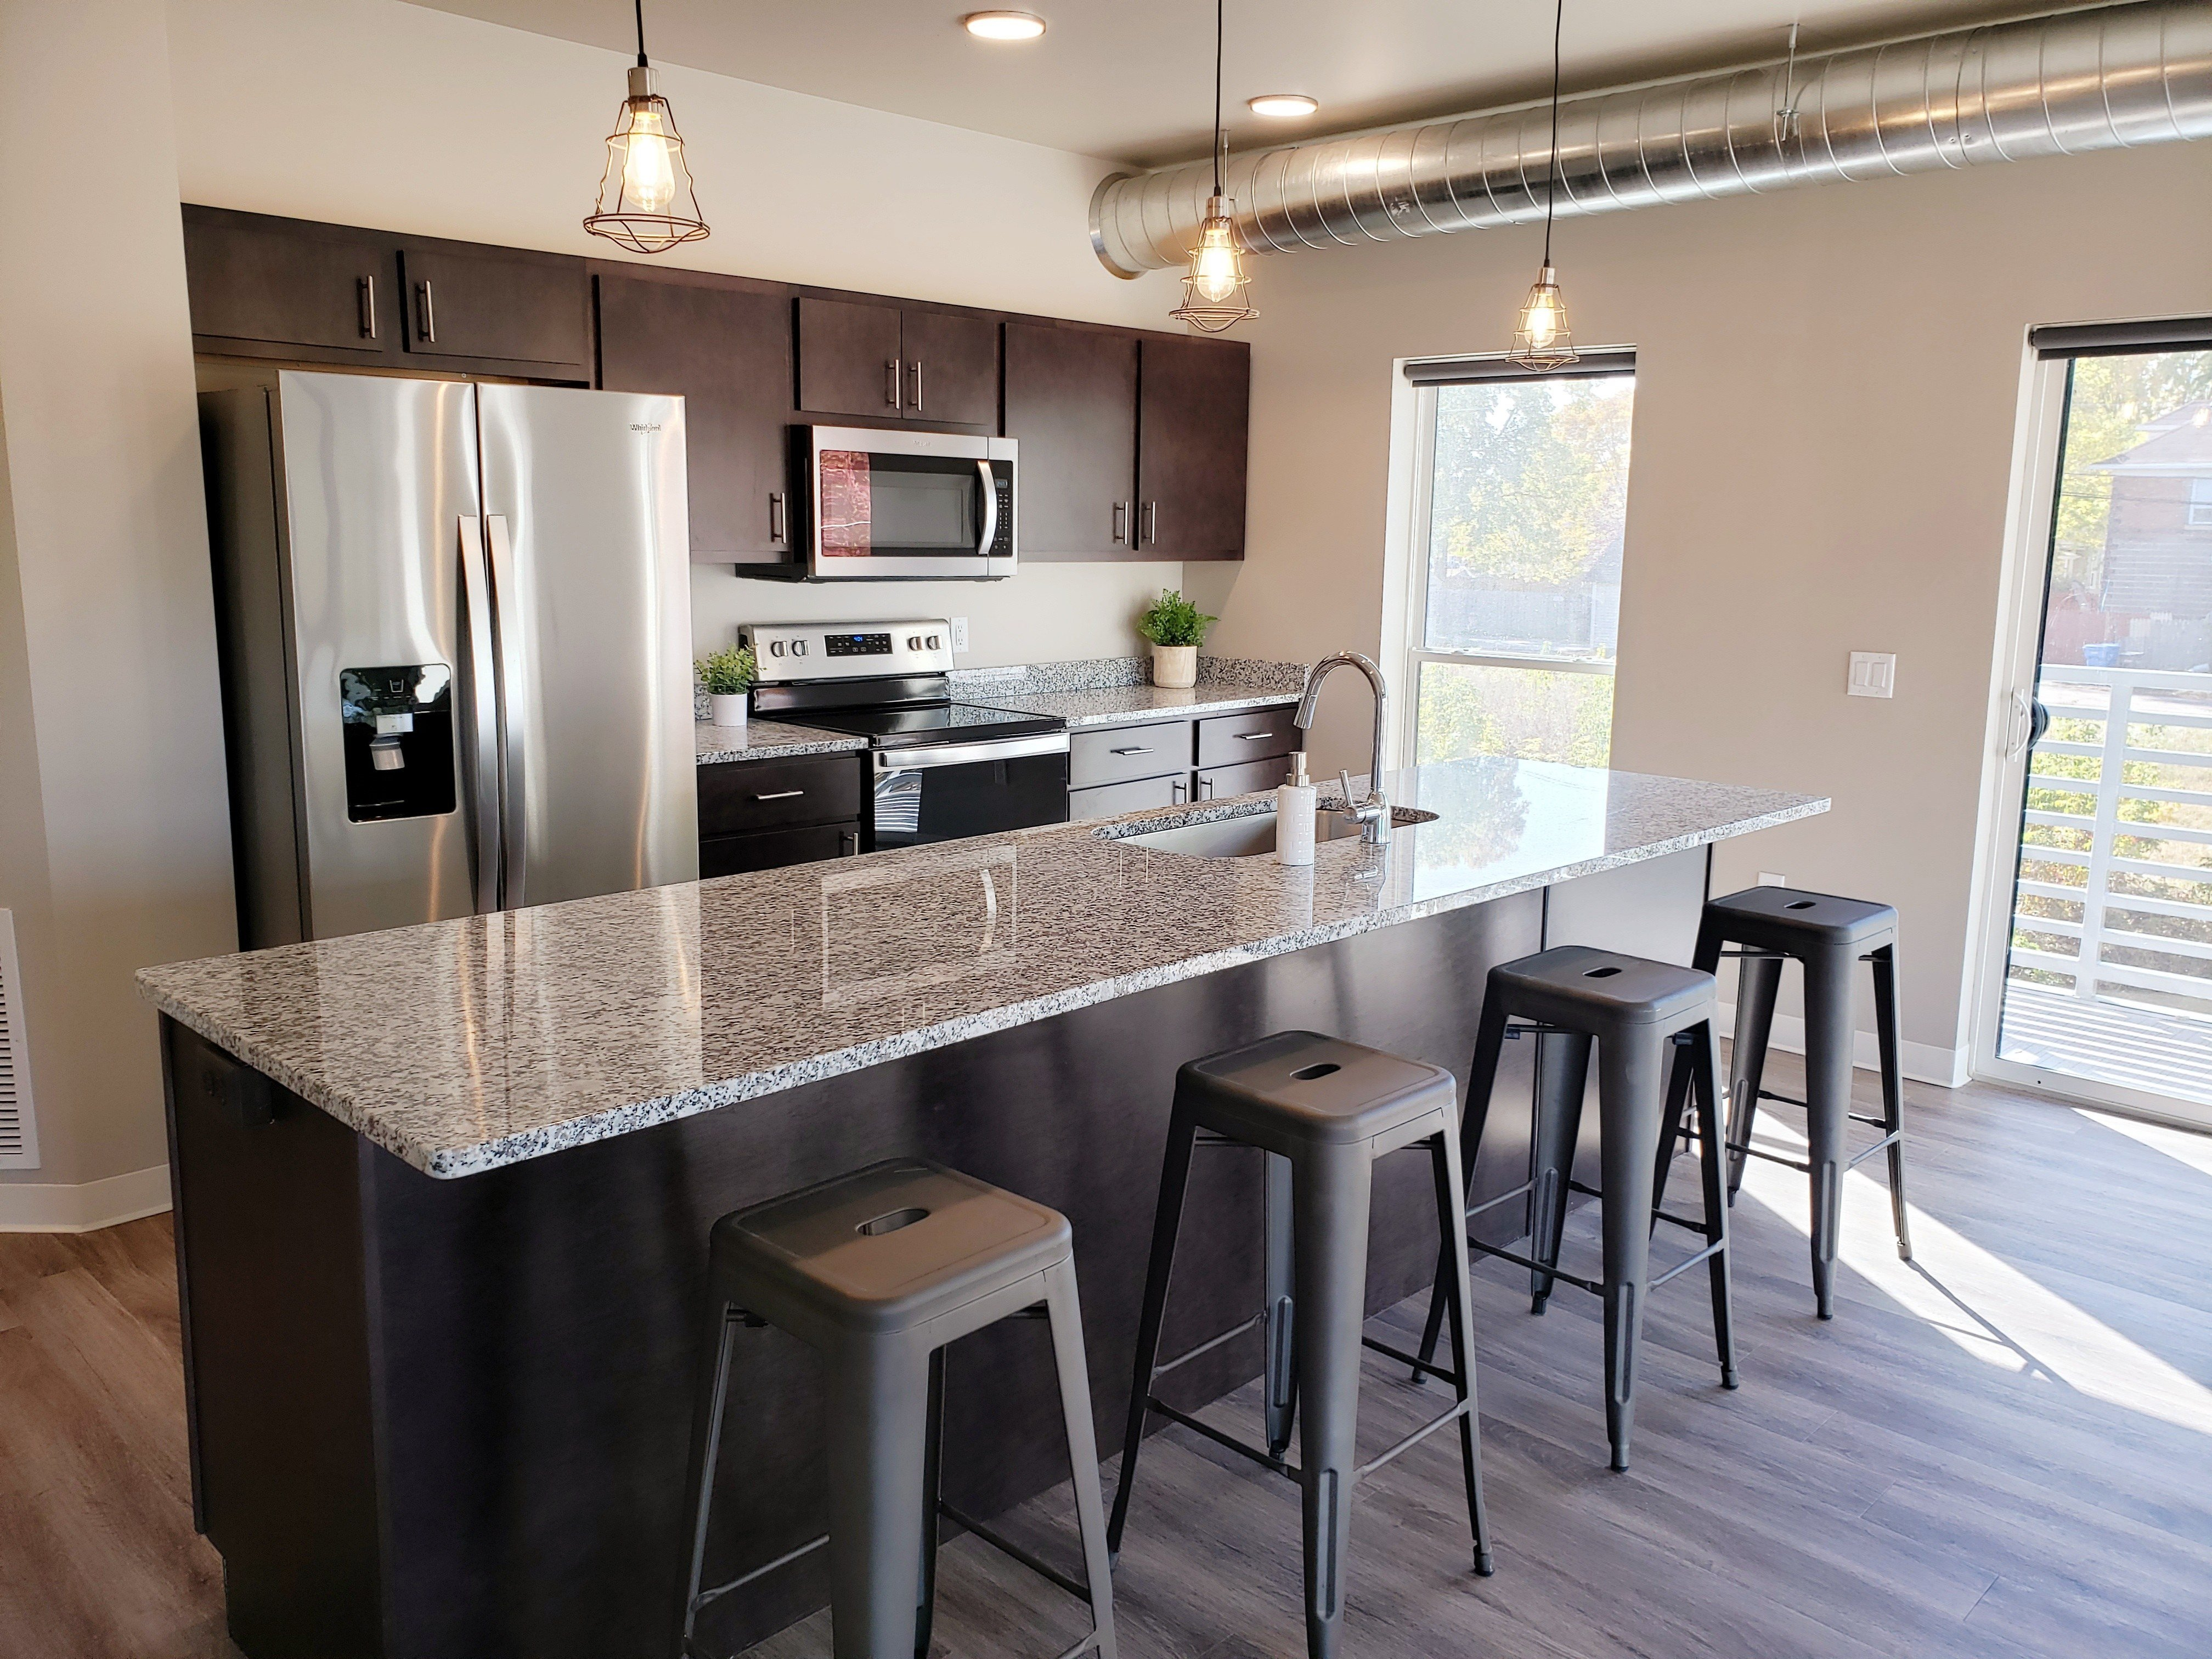 The Current Eau Claire Luxury Apartments Studio one bedroom two bedroom  The Current Eau Claire Luxury Apartments Studio one bedroom two bedroom